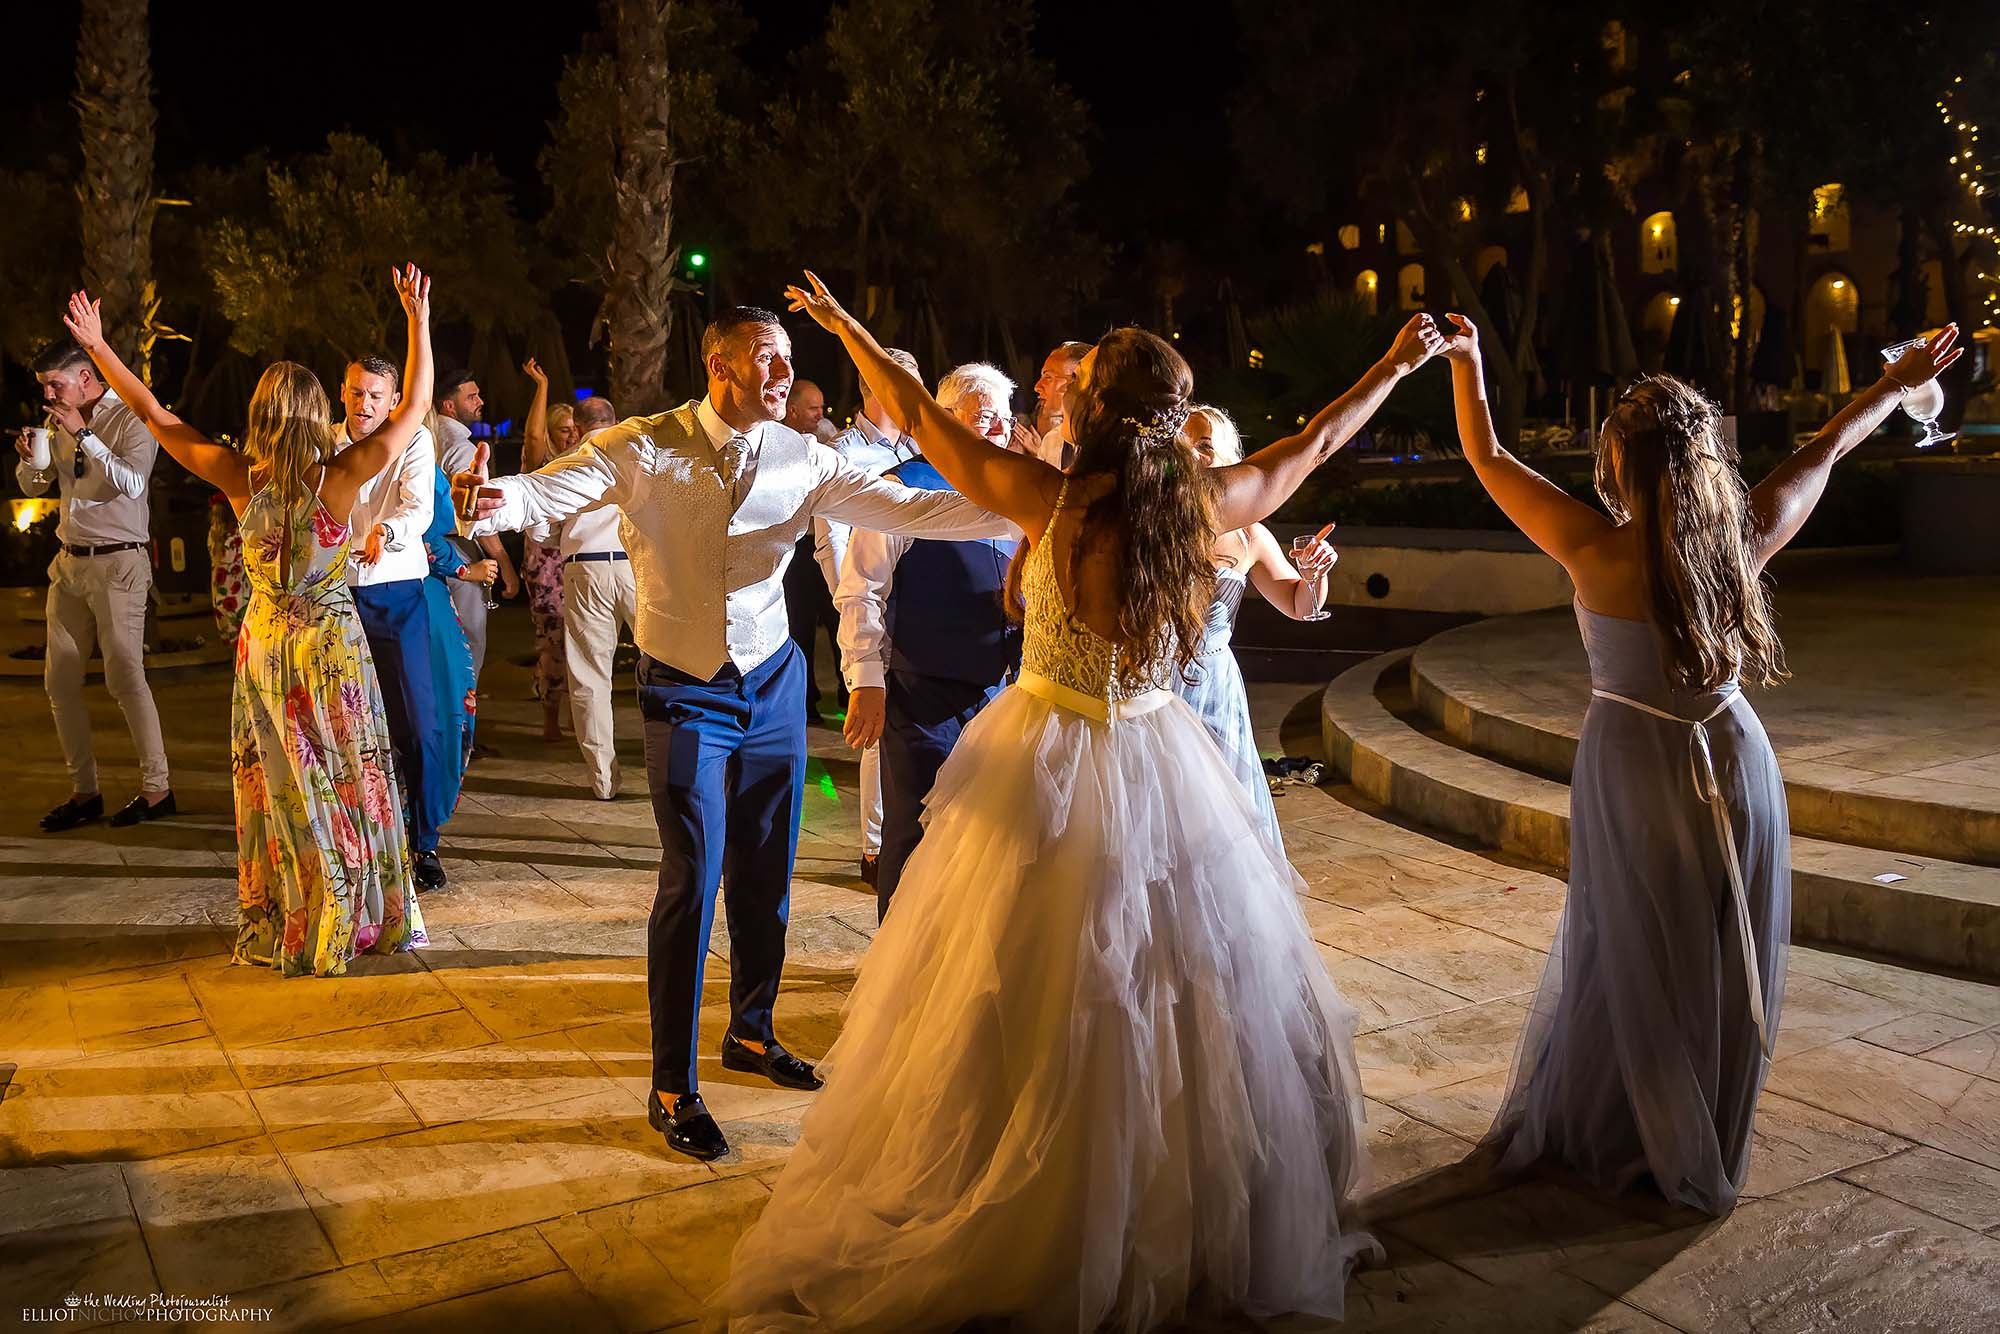 Bride and groom partying on the dance floor with their wedding guests.